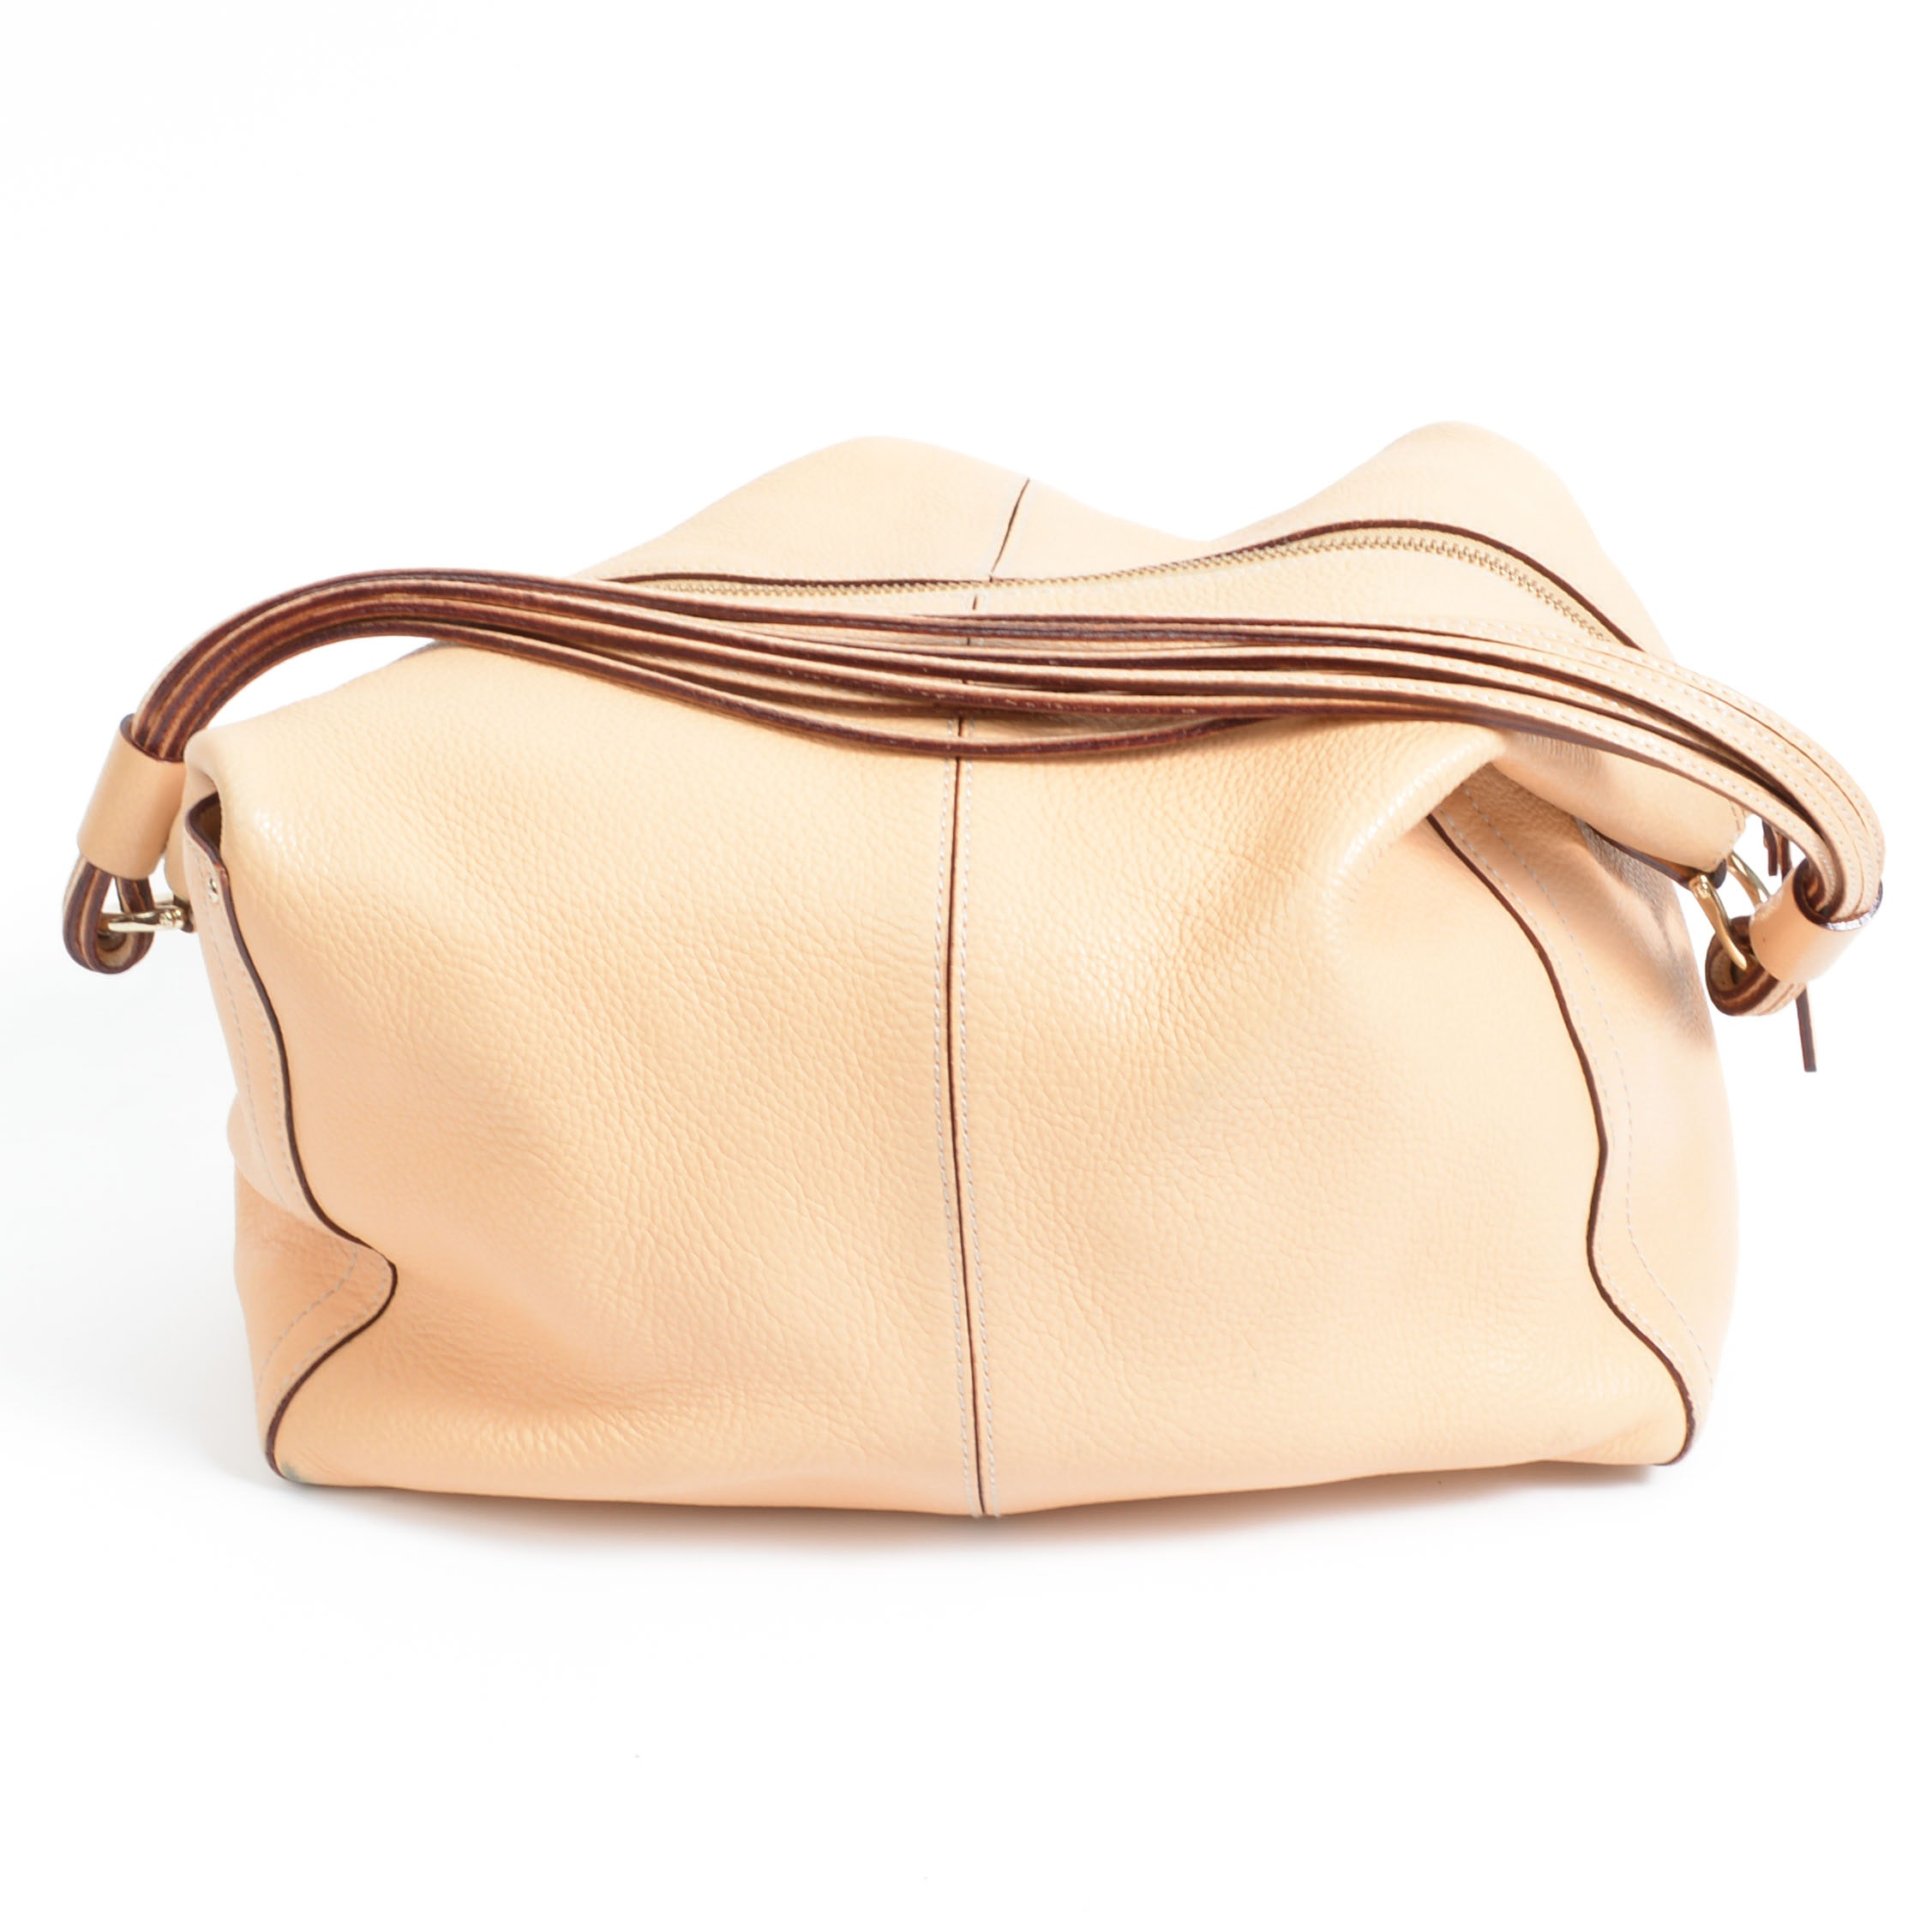 Beige Relaxed Leather Kate Spade Handbag